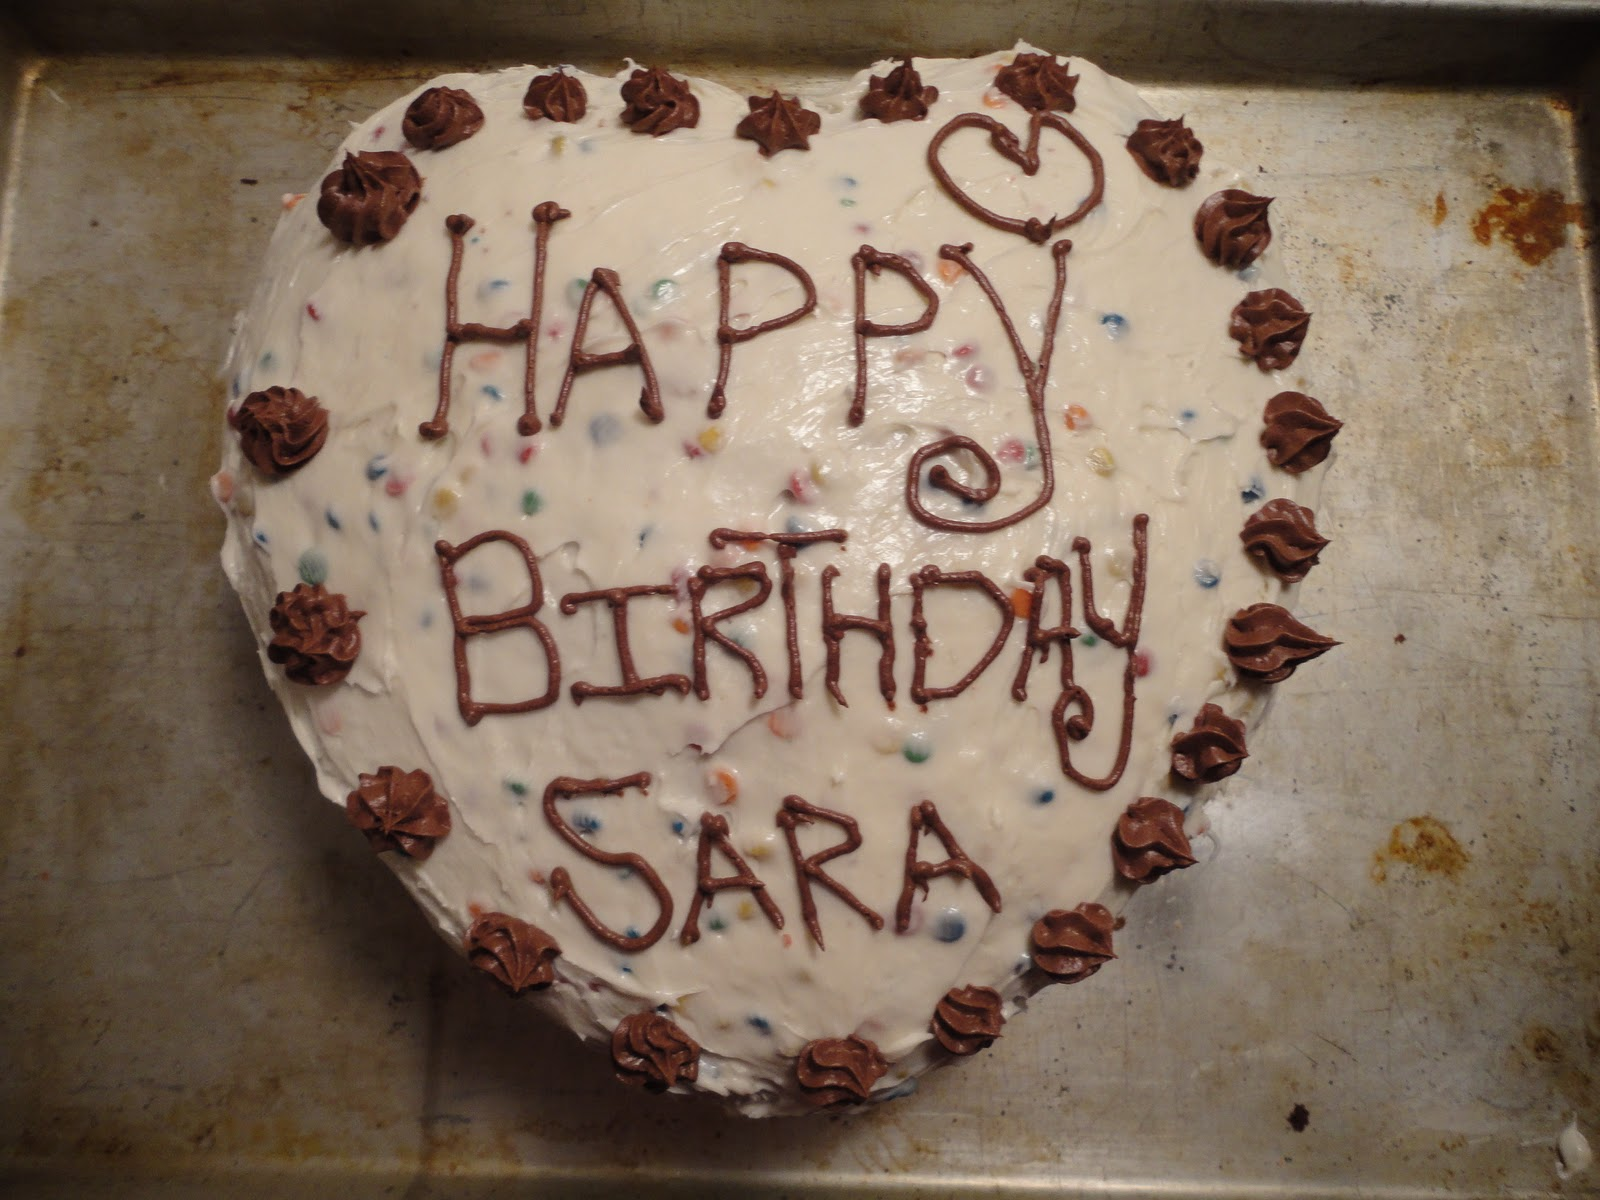 365 Days Of Life Love And Laughter Saras Birthday Cake Day 28